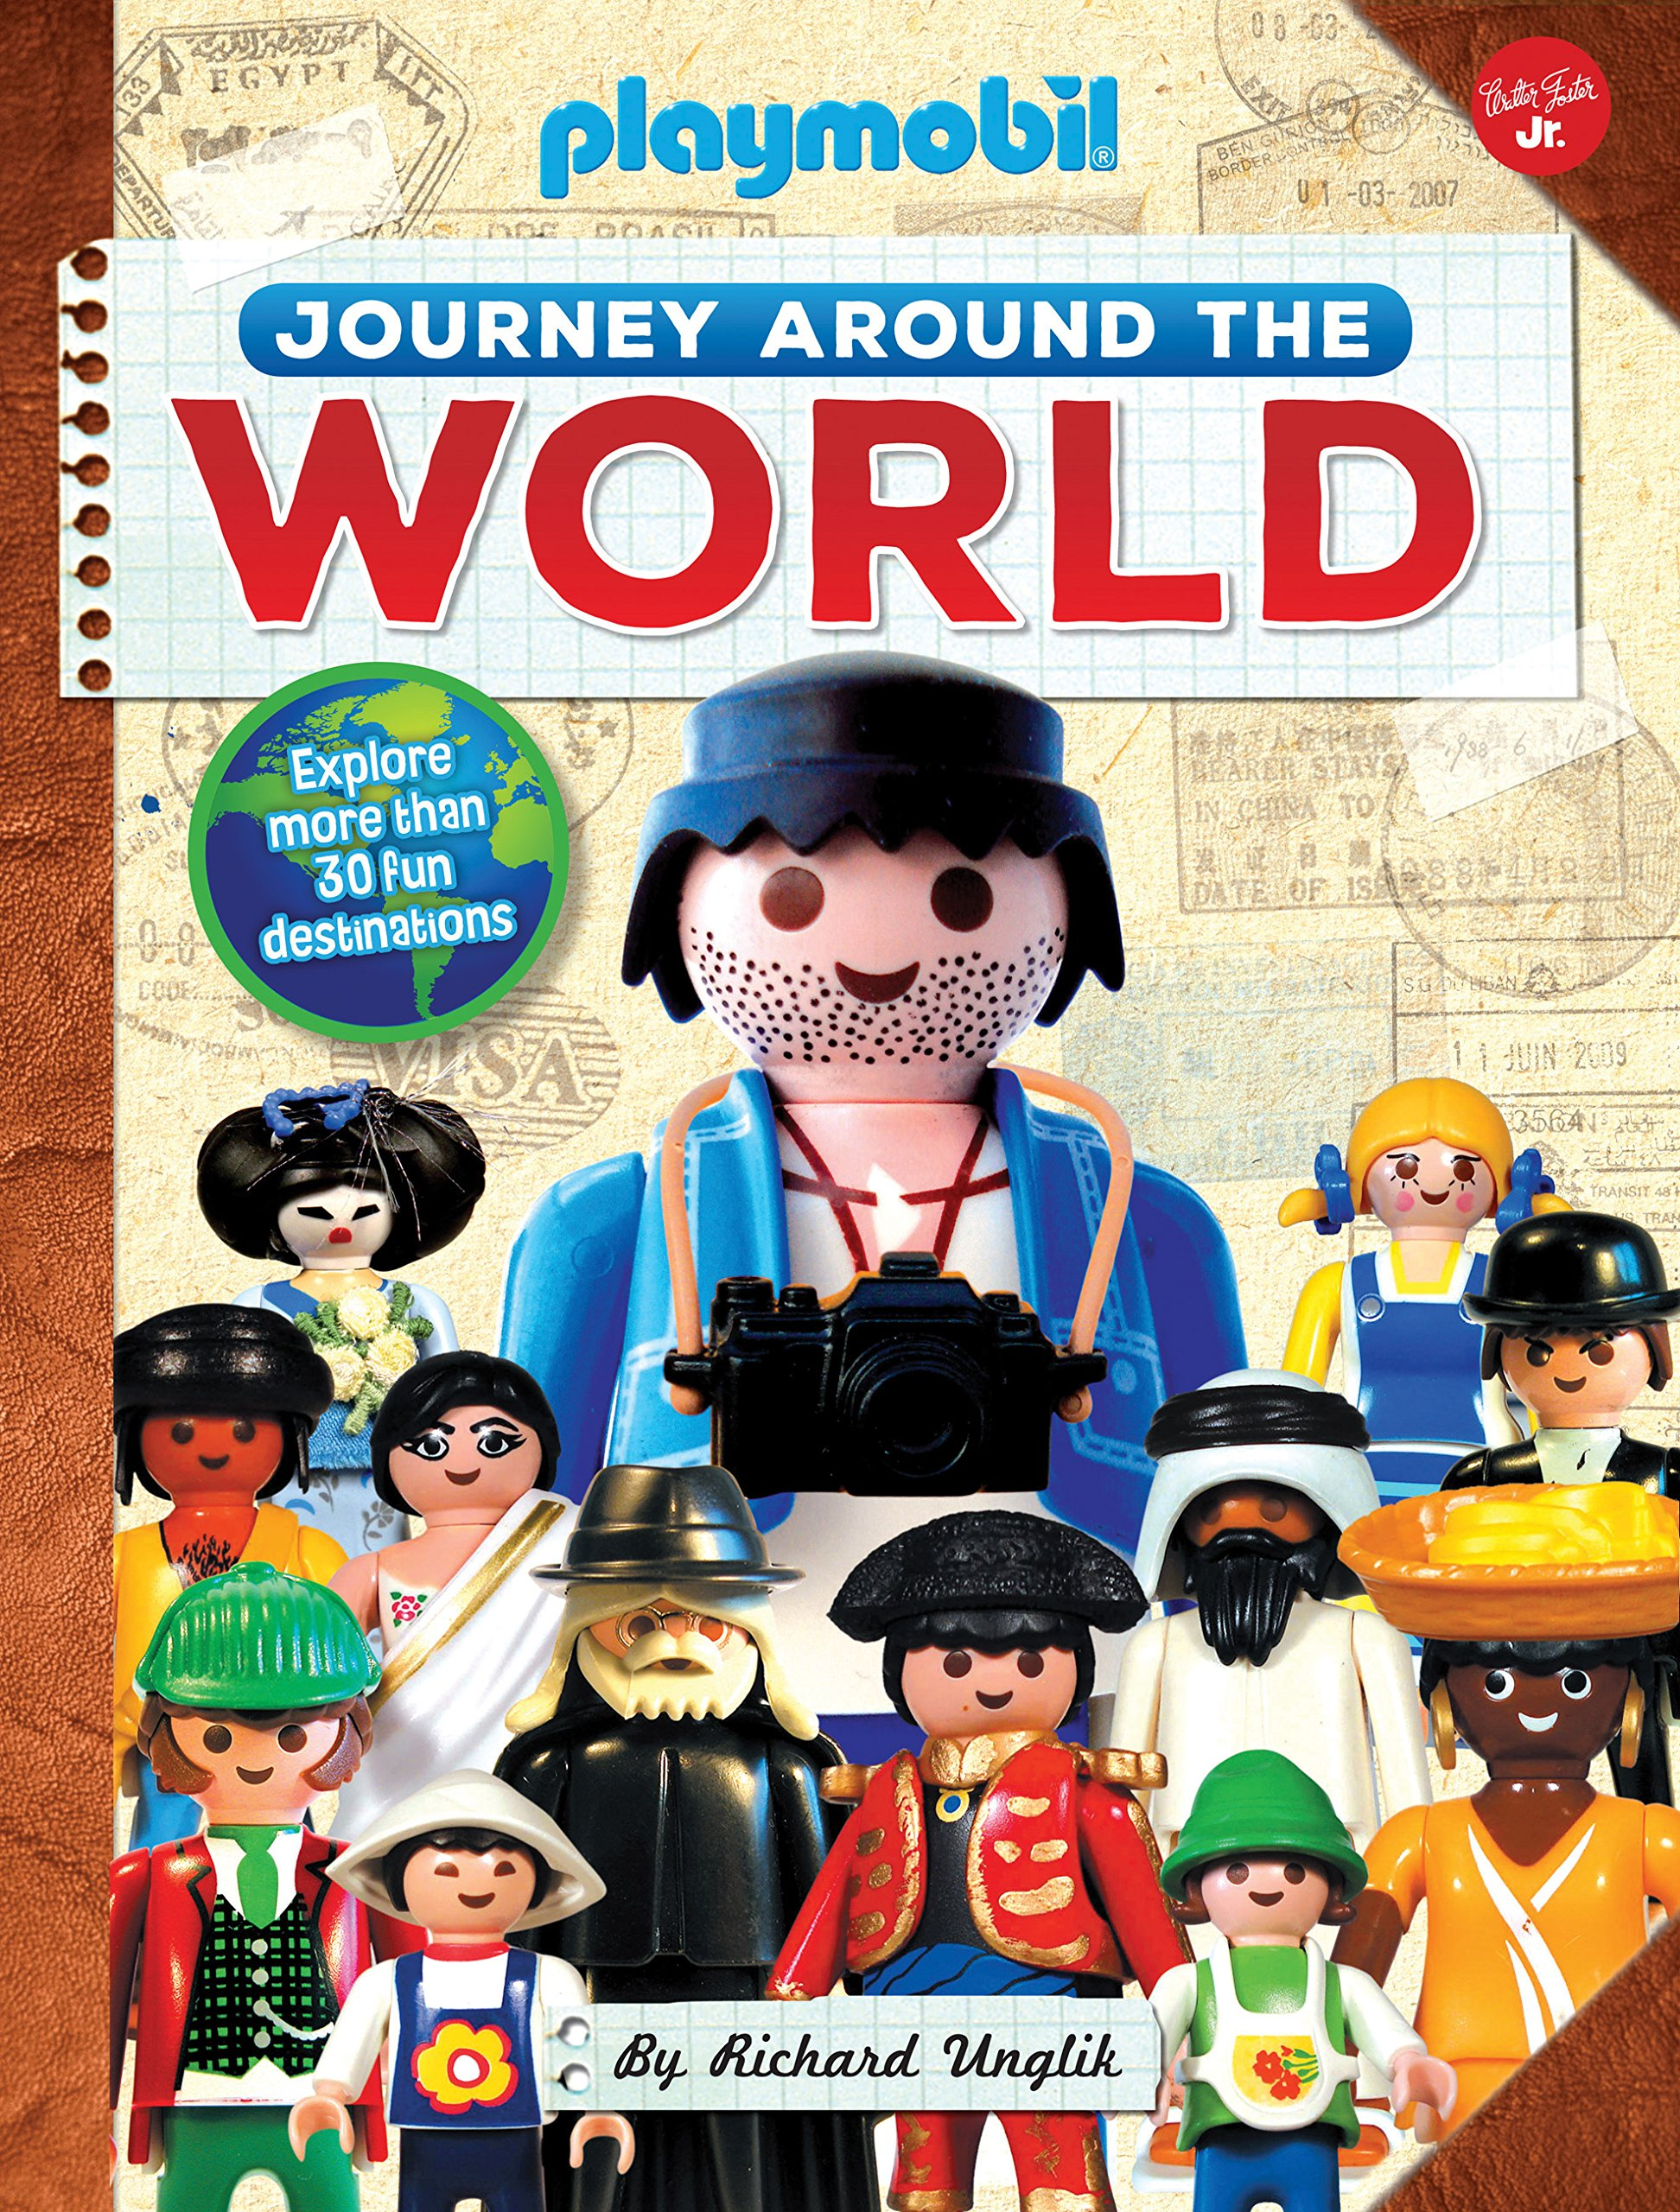 Journey Around the World: Explore more than 30 fun destinations (Playmobil)